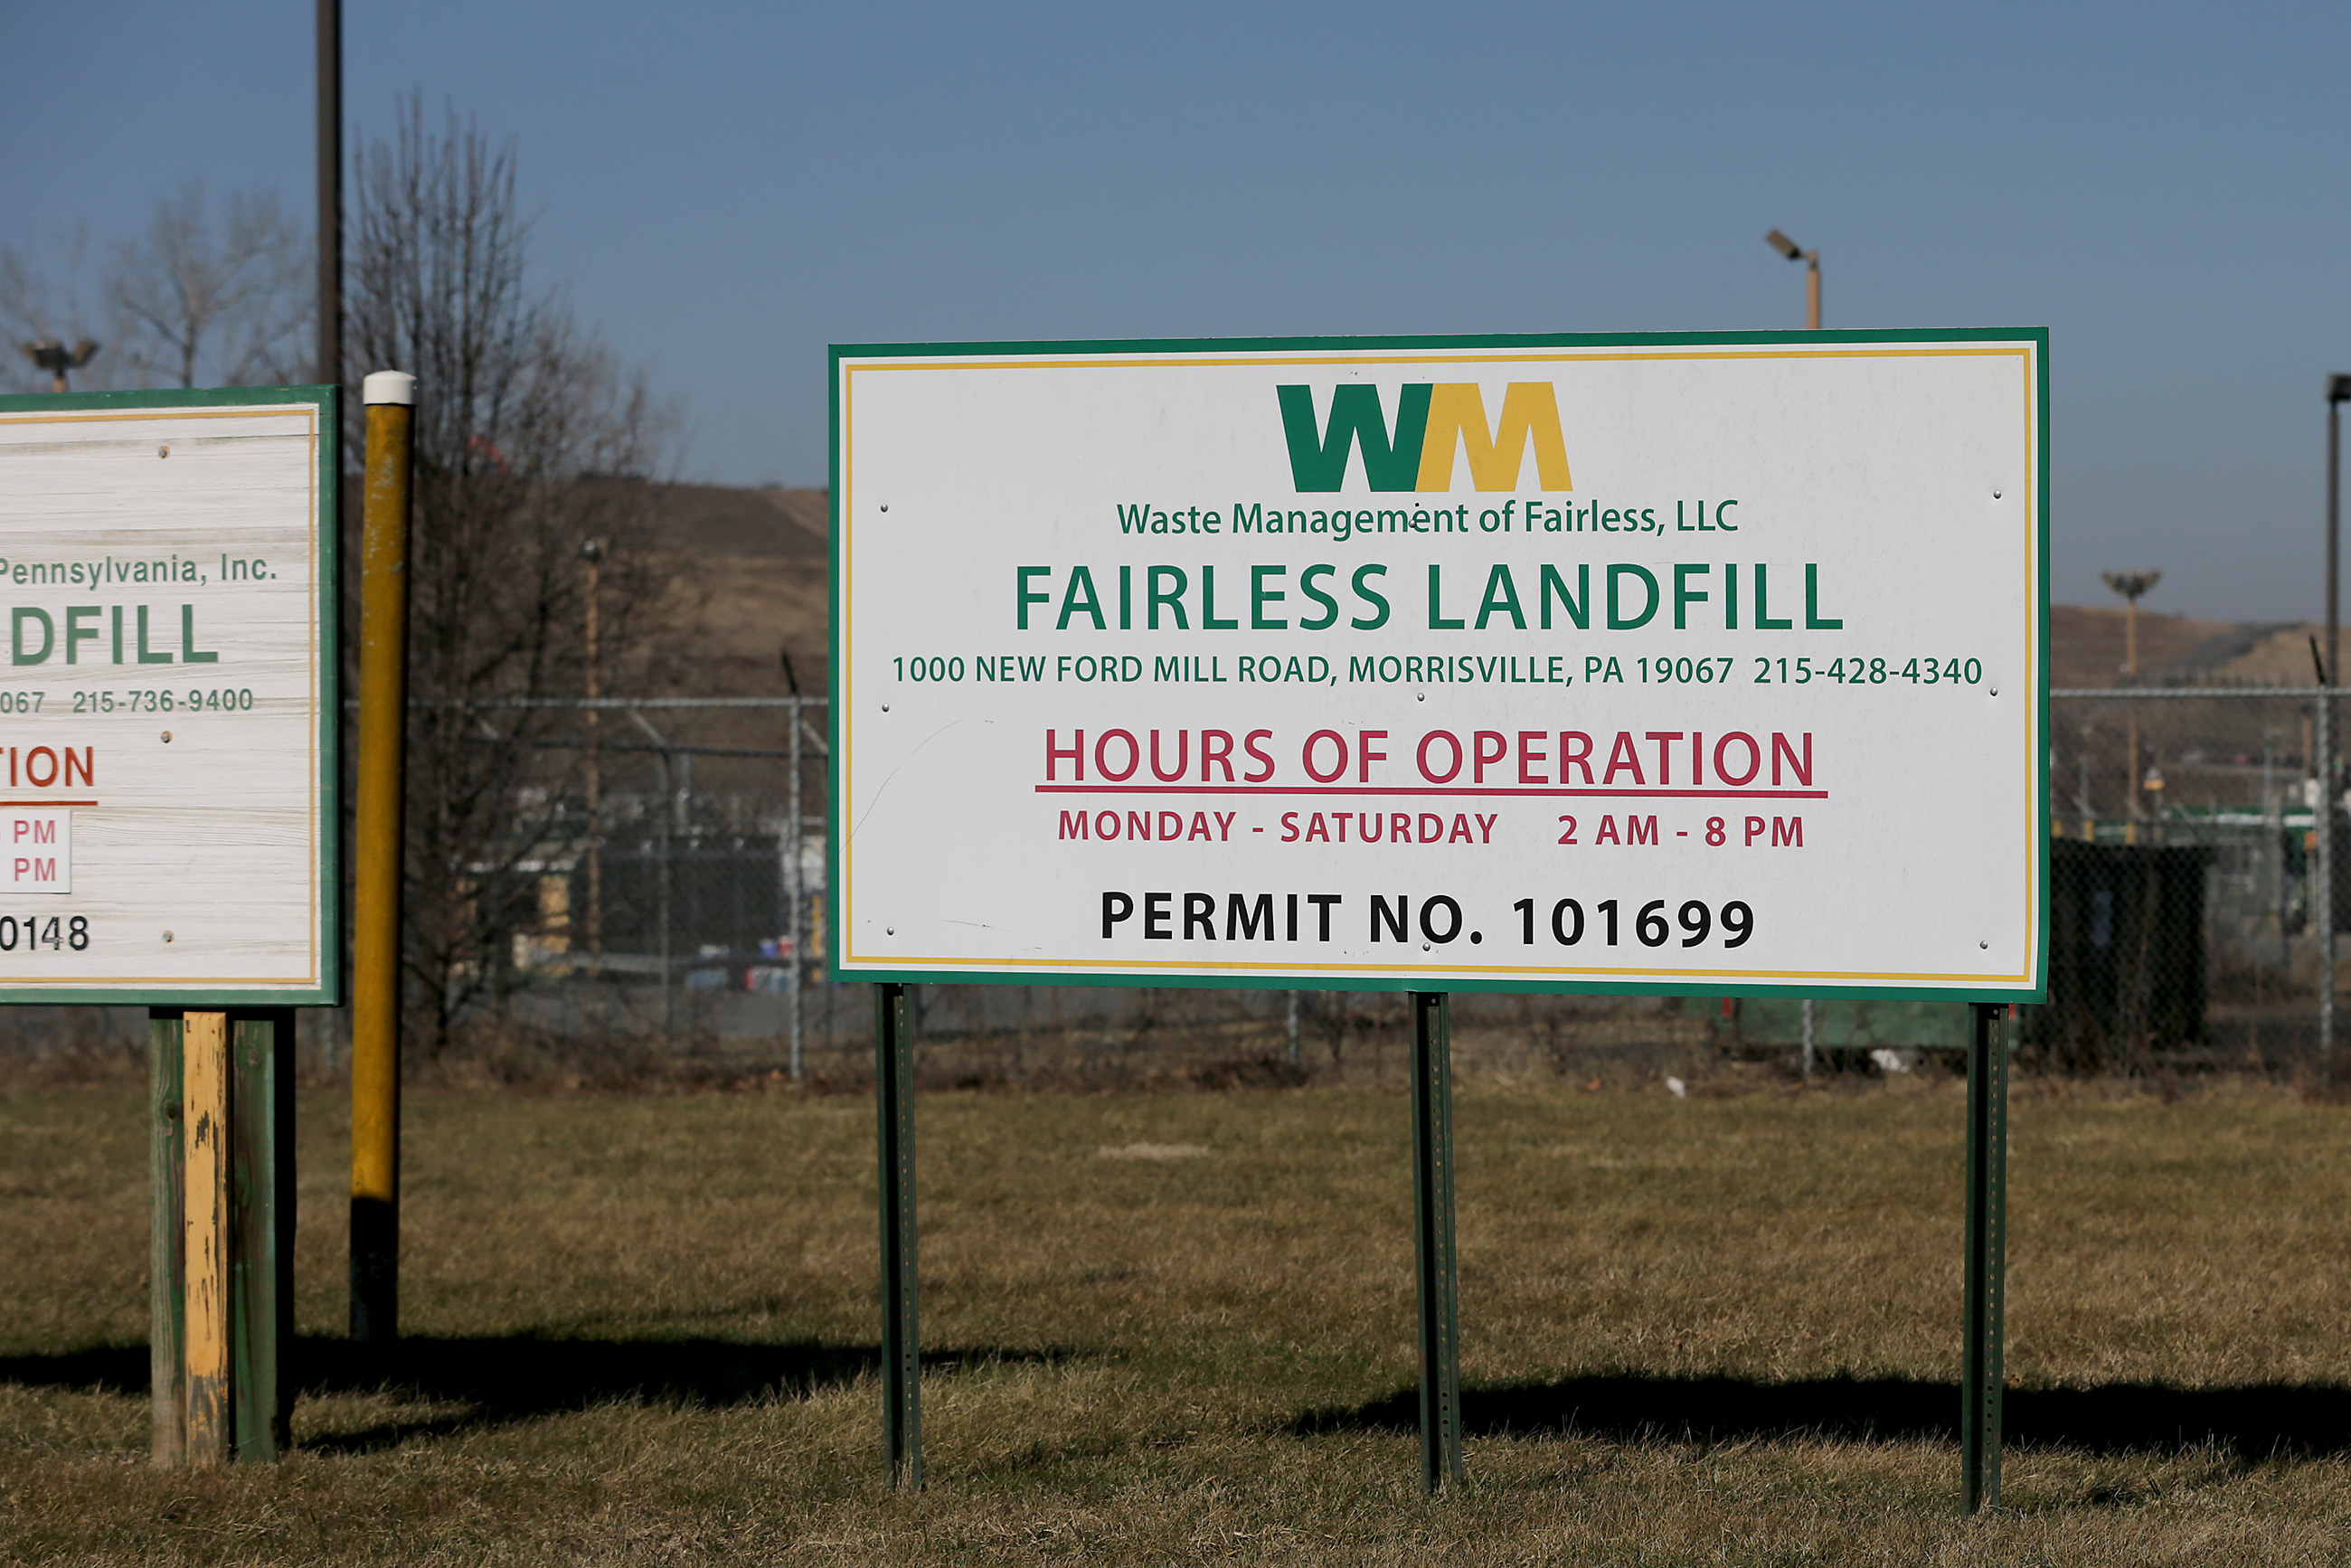 A sign sits outside the entrance to Waste Management's Fairless Landfill in Morrisville, PA on February 4, 2019.